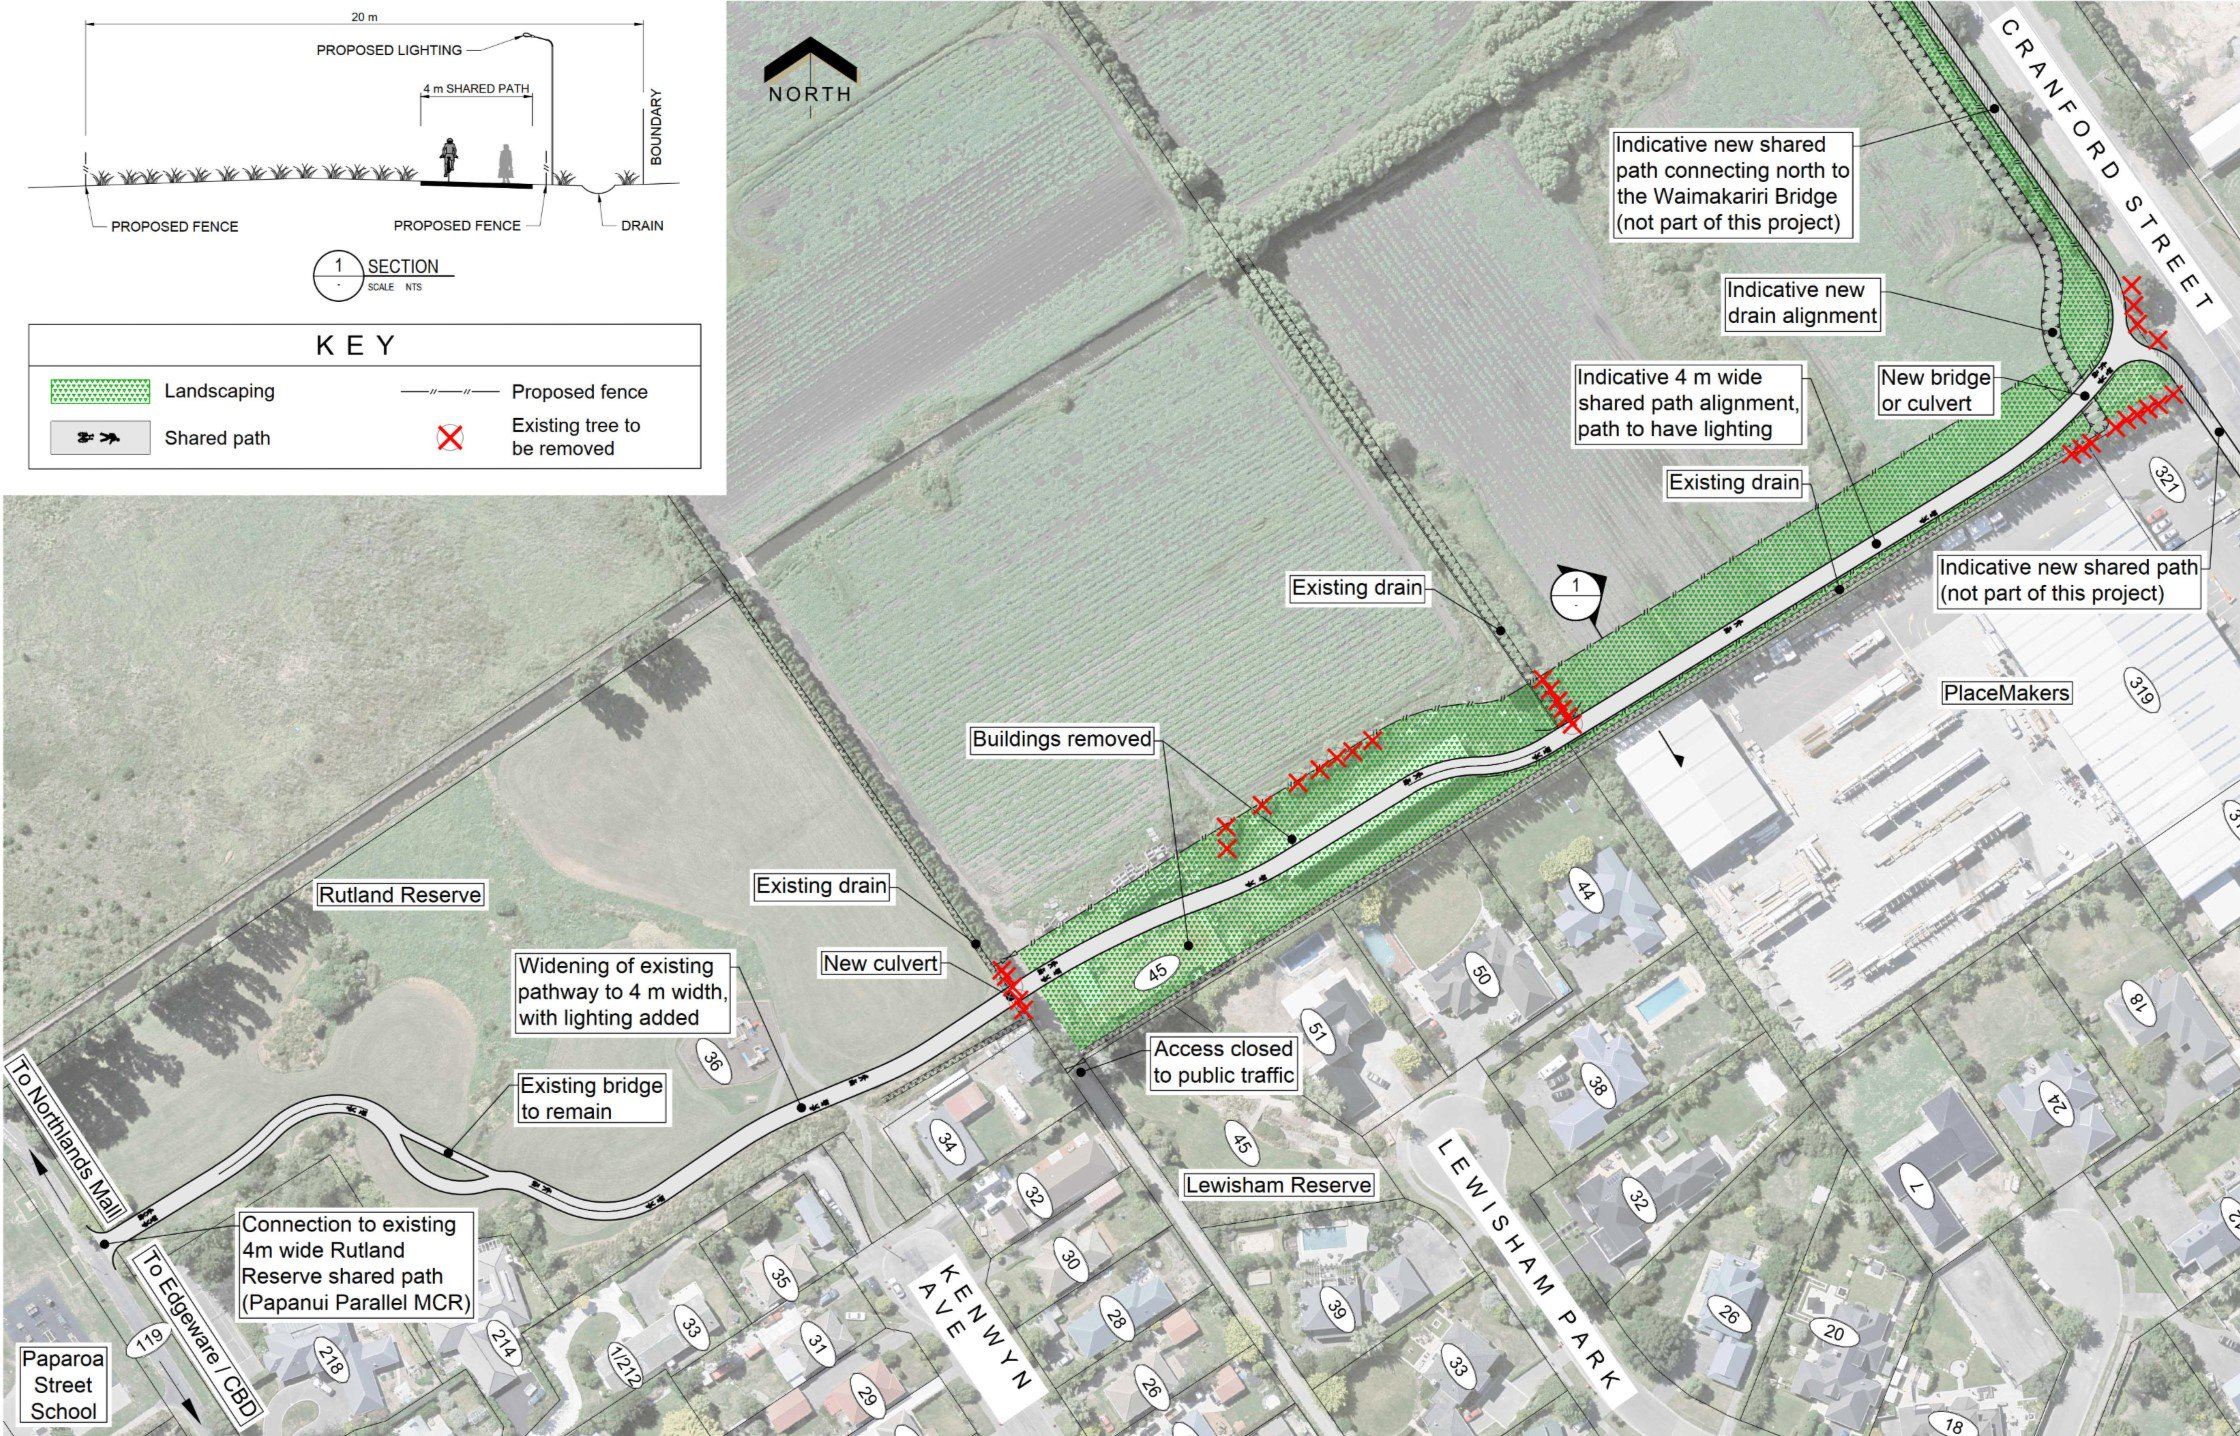 CNC cycleway connection to Papanui Parallel